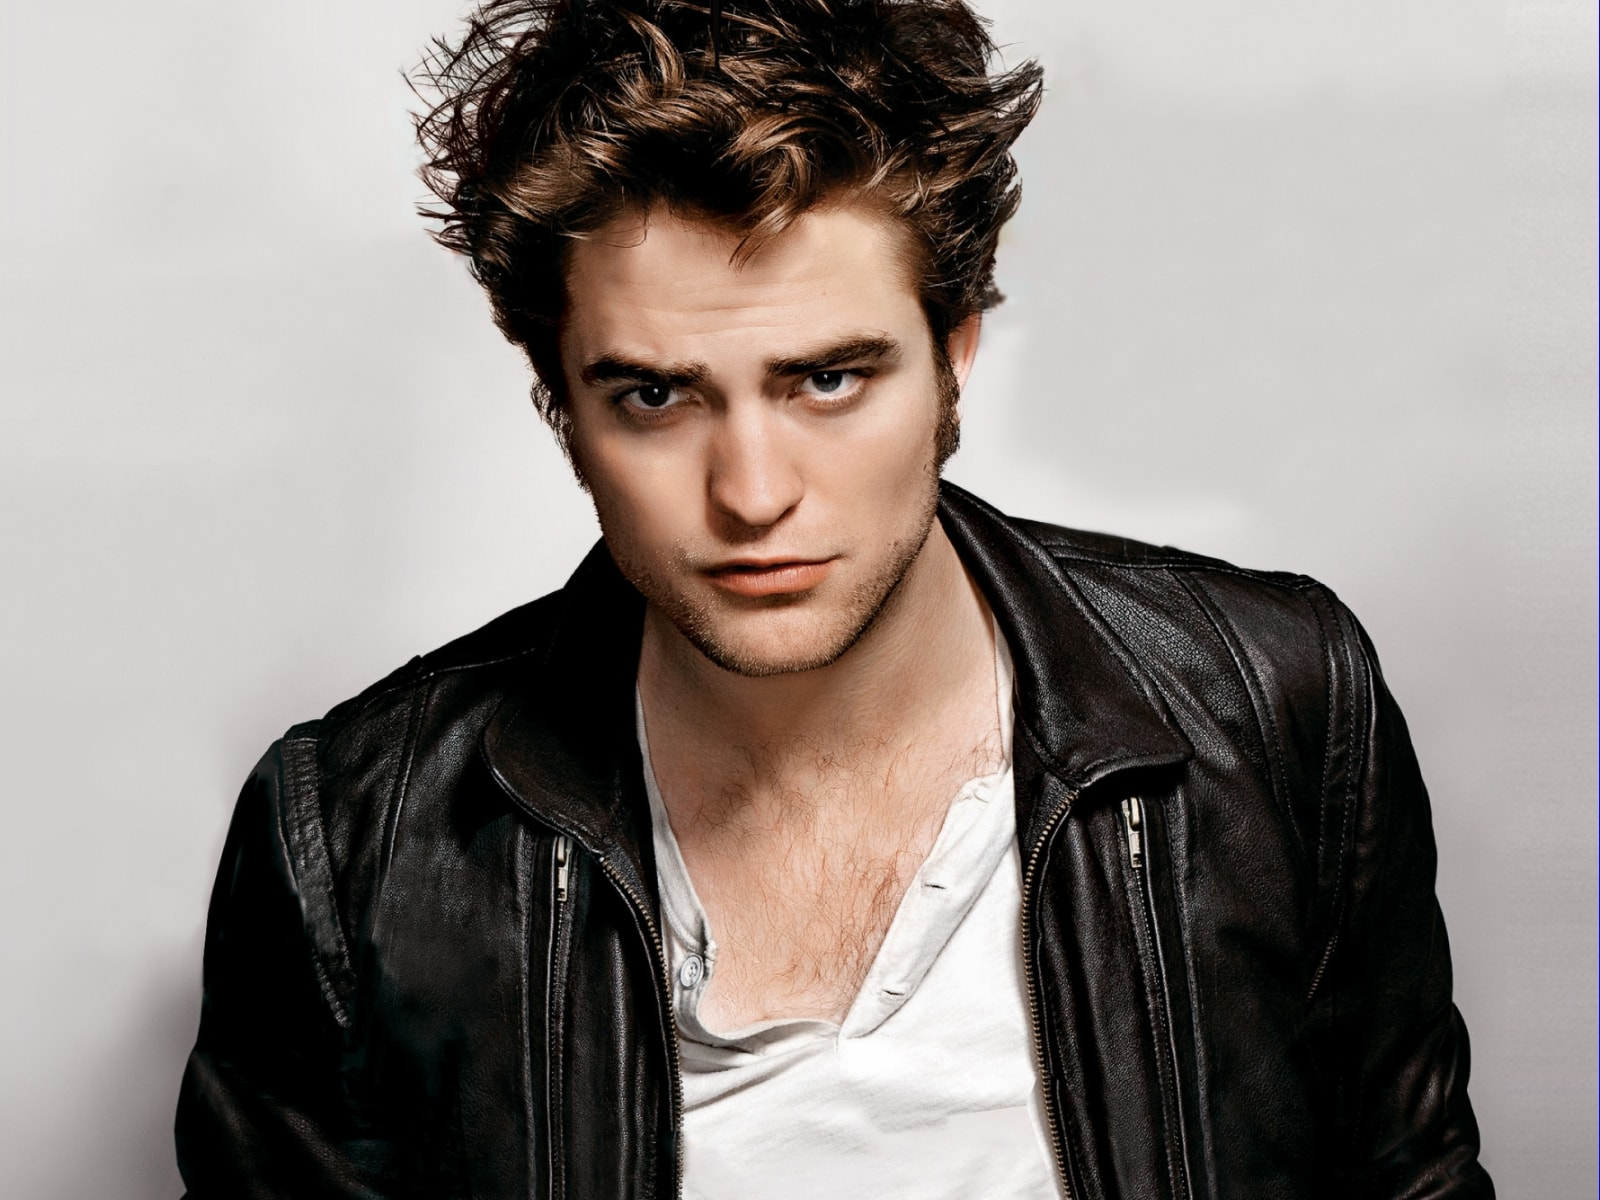 Robert Pattinson widescreen wallpapers